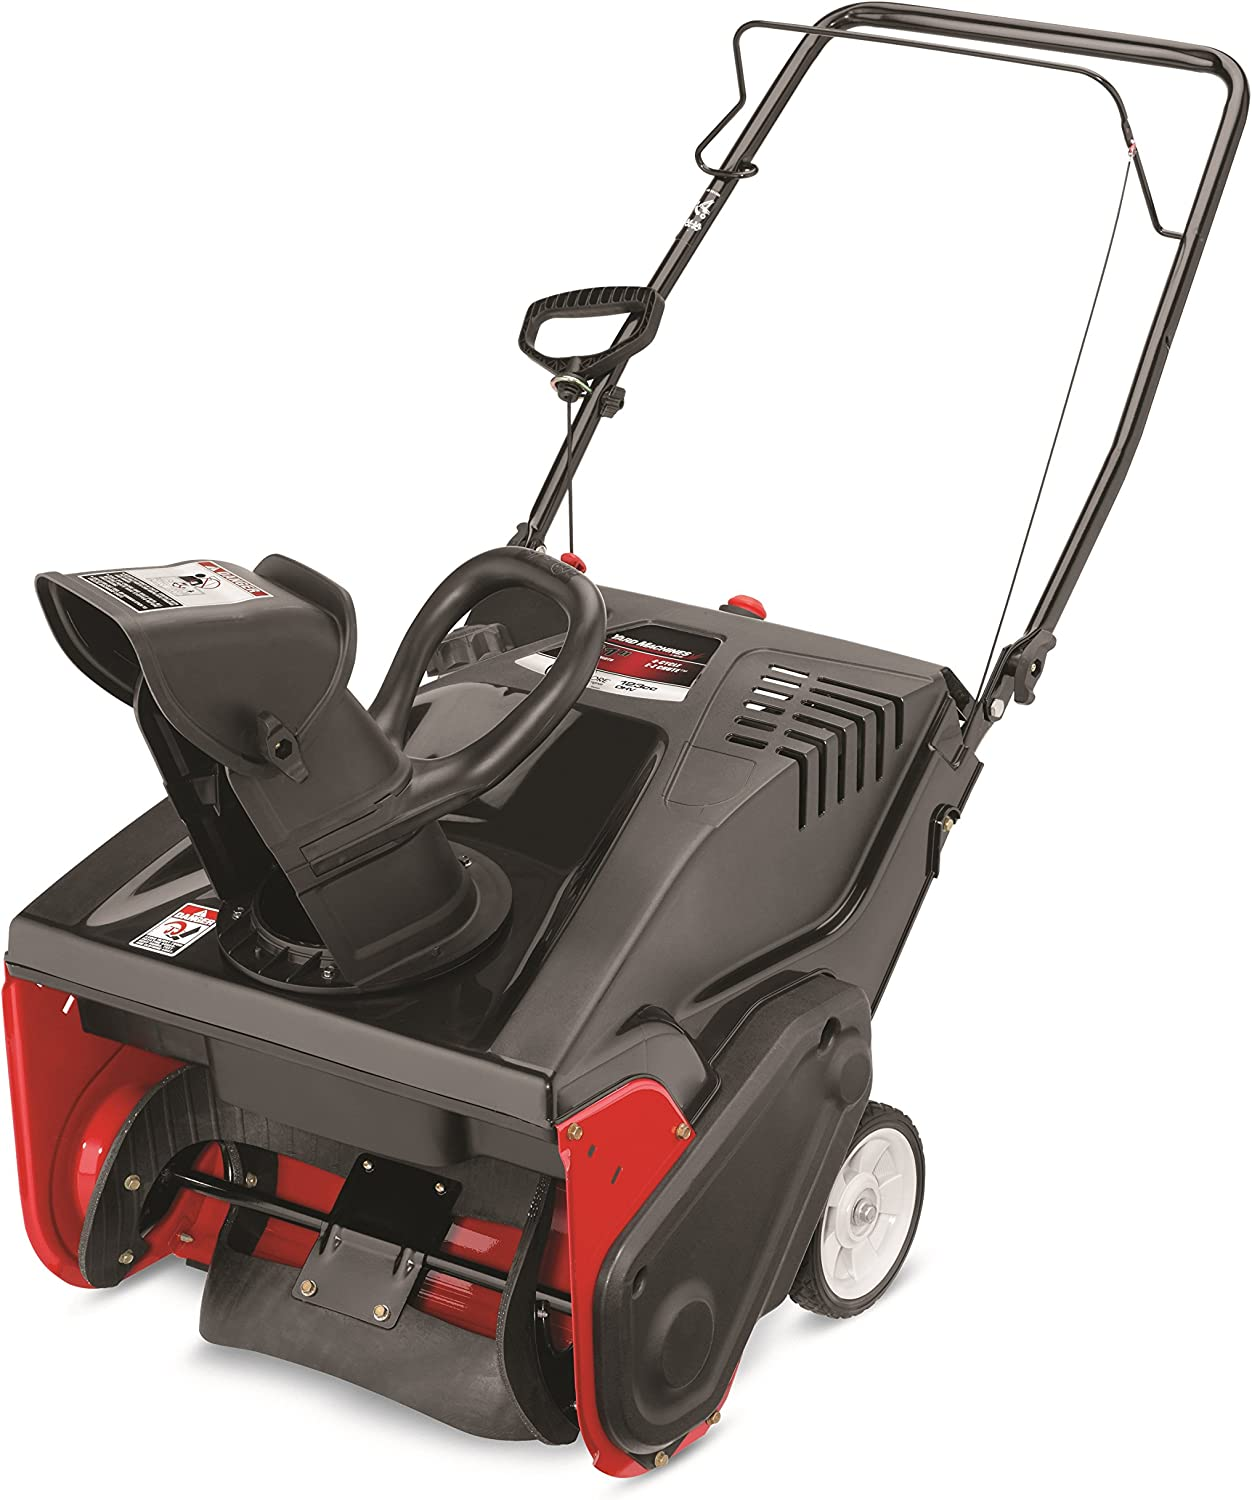 Amazon.com: Yard máquinas 123 CC OHV 4-cycle Gas Powered 21 ...